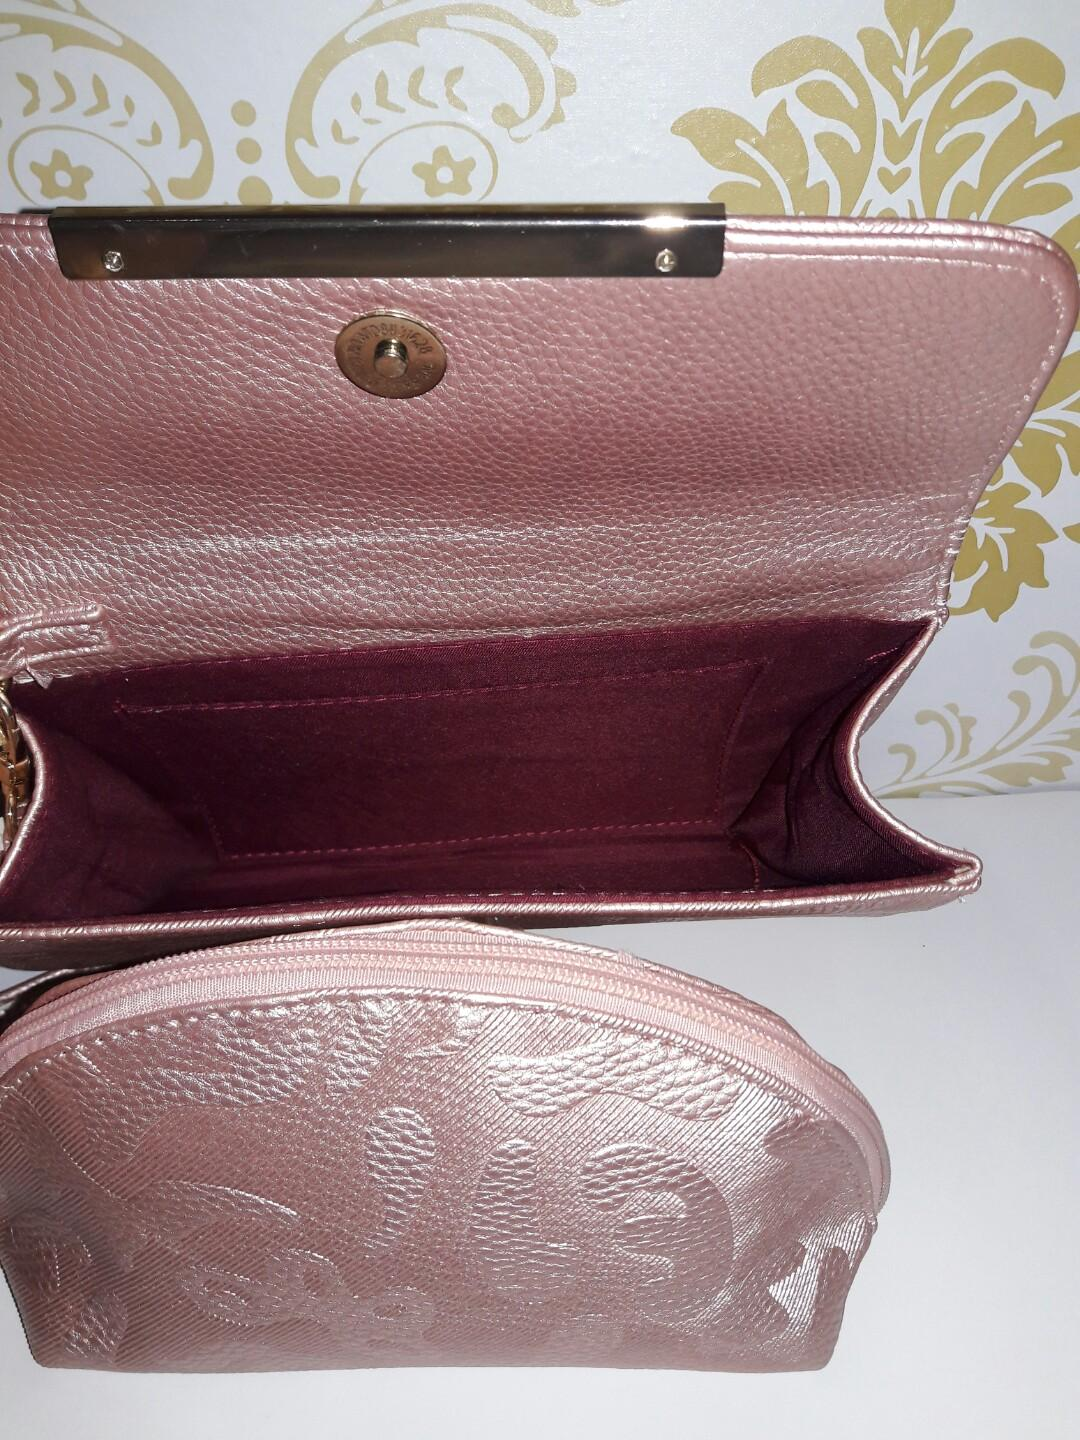 Preloved Handbag Free Pouch